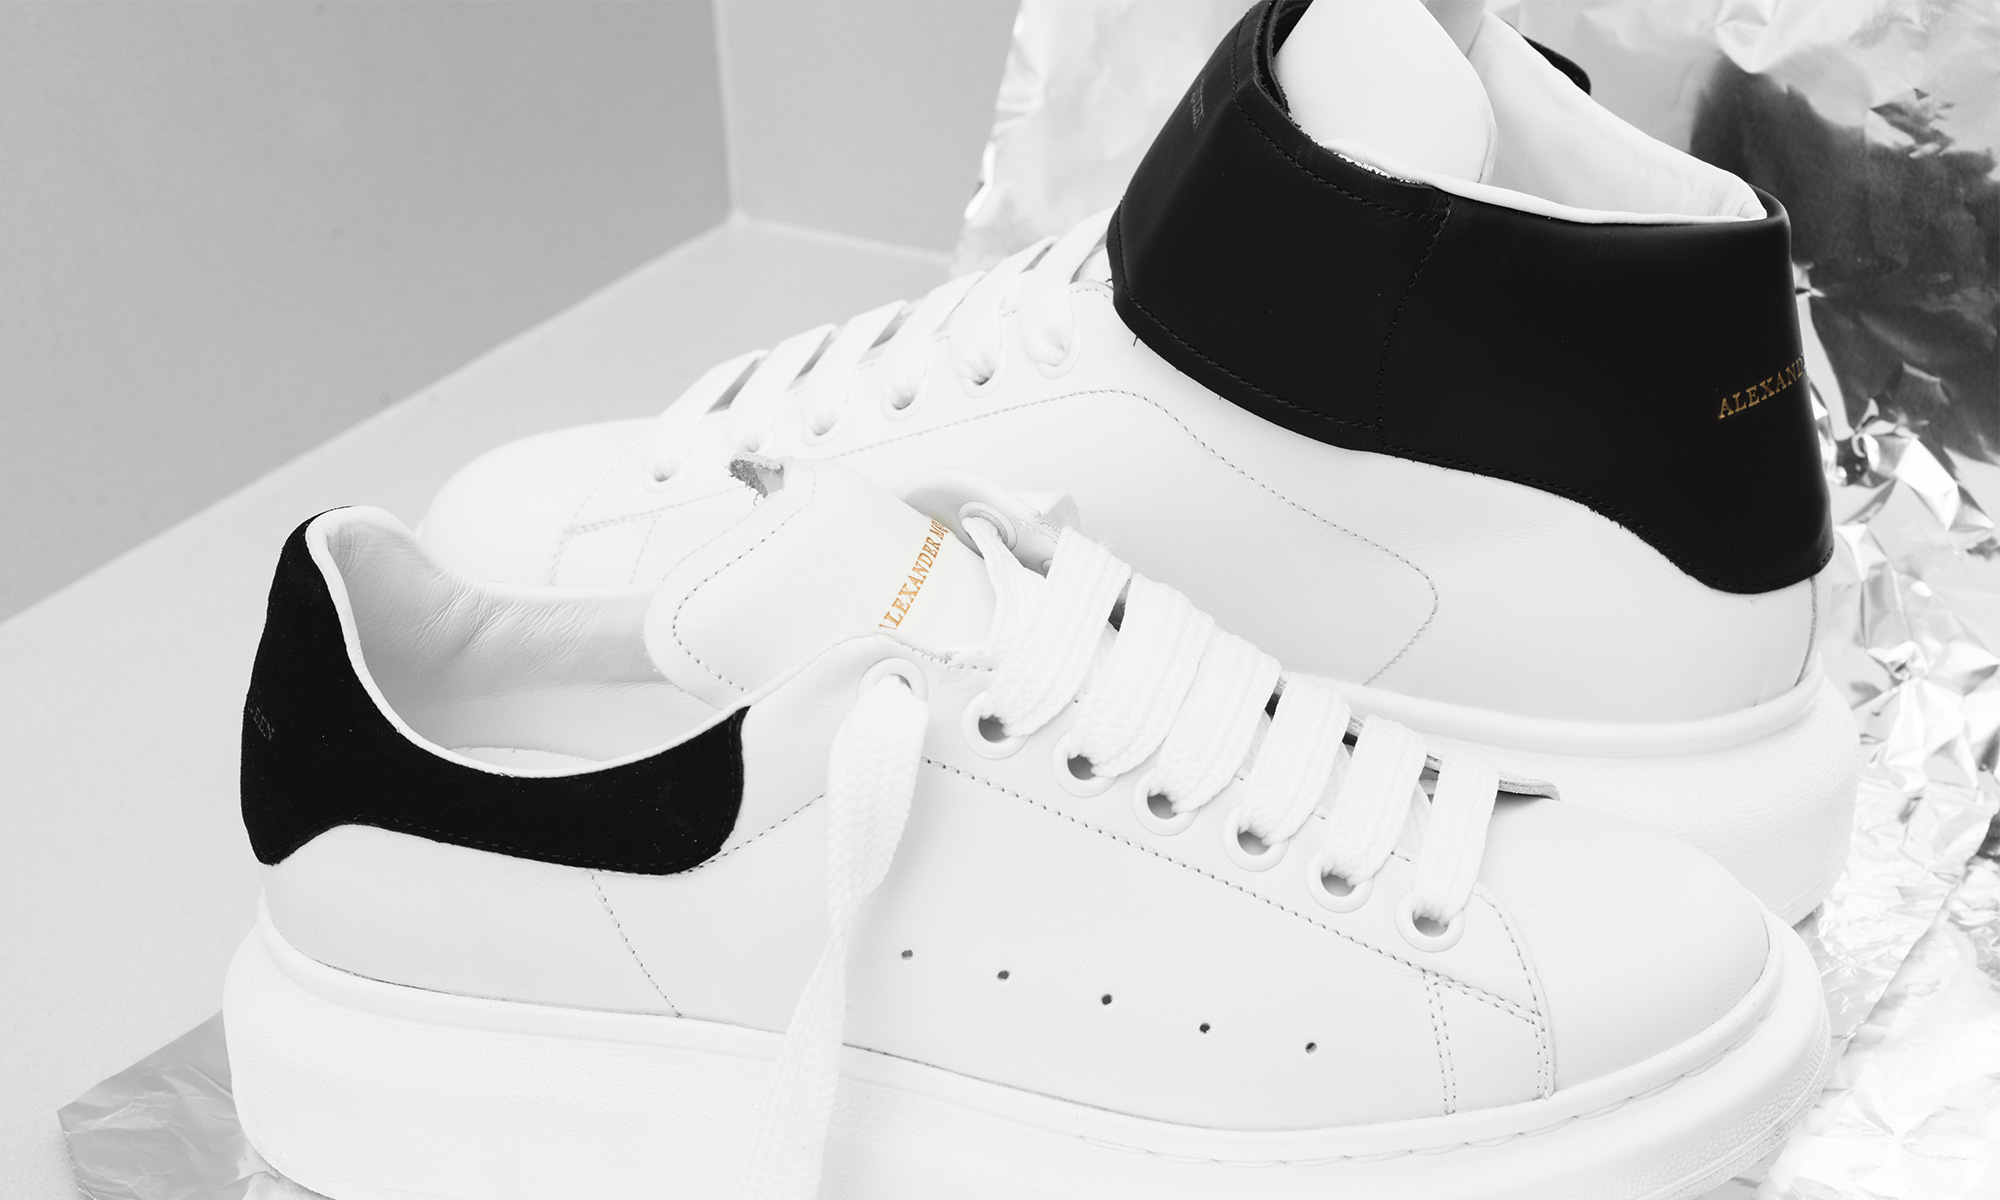 alexander-mcqueen-sneakers-visual-magazine-closer-look-4